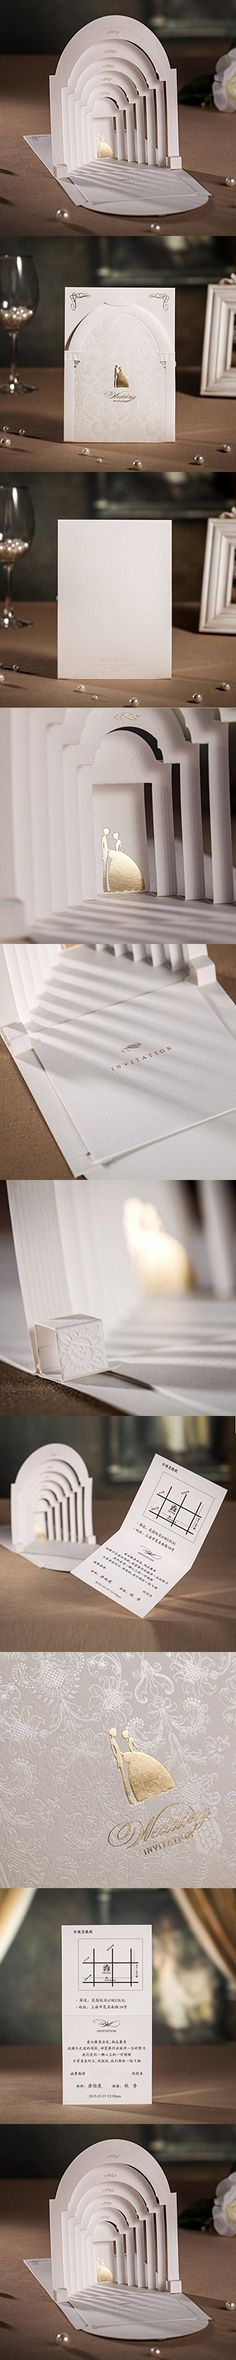 Wishmade 50x Elegant 3D Laser Cut Wedding Invitations Cards Kits with Groom and Bride in Palace Pattern Paper Cardstock for Wedding(set of 50pcs)CW3079